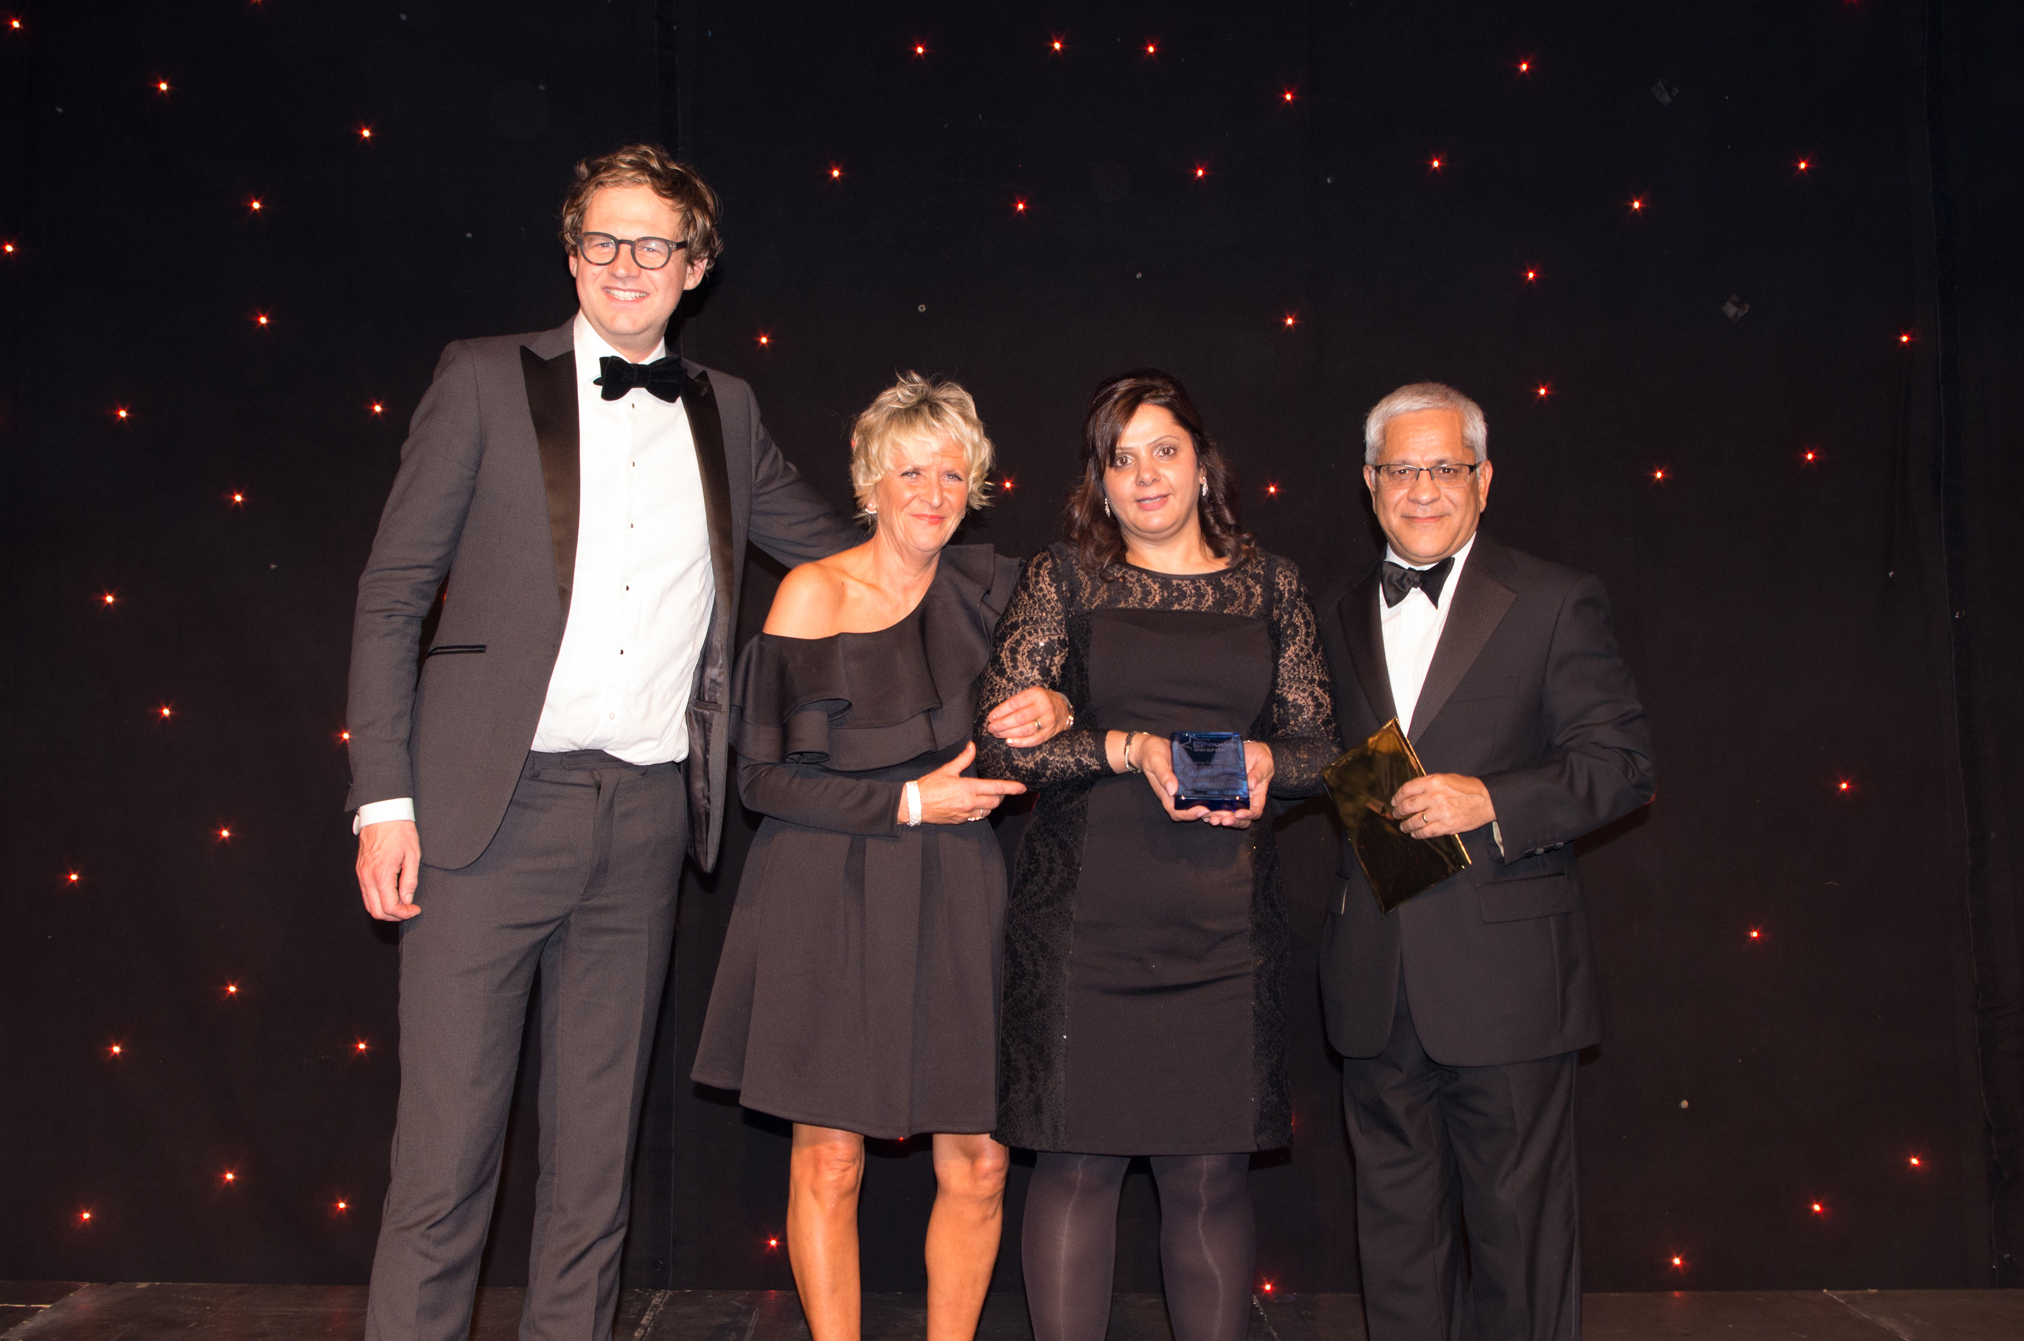 Pam Malhi wins Housing Professional of the Year